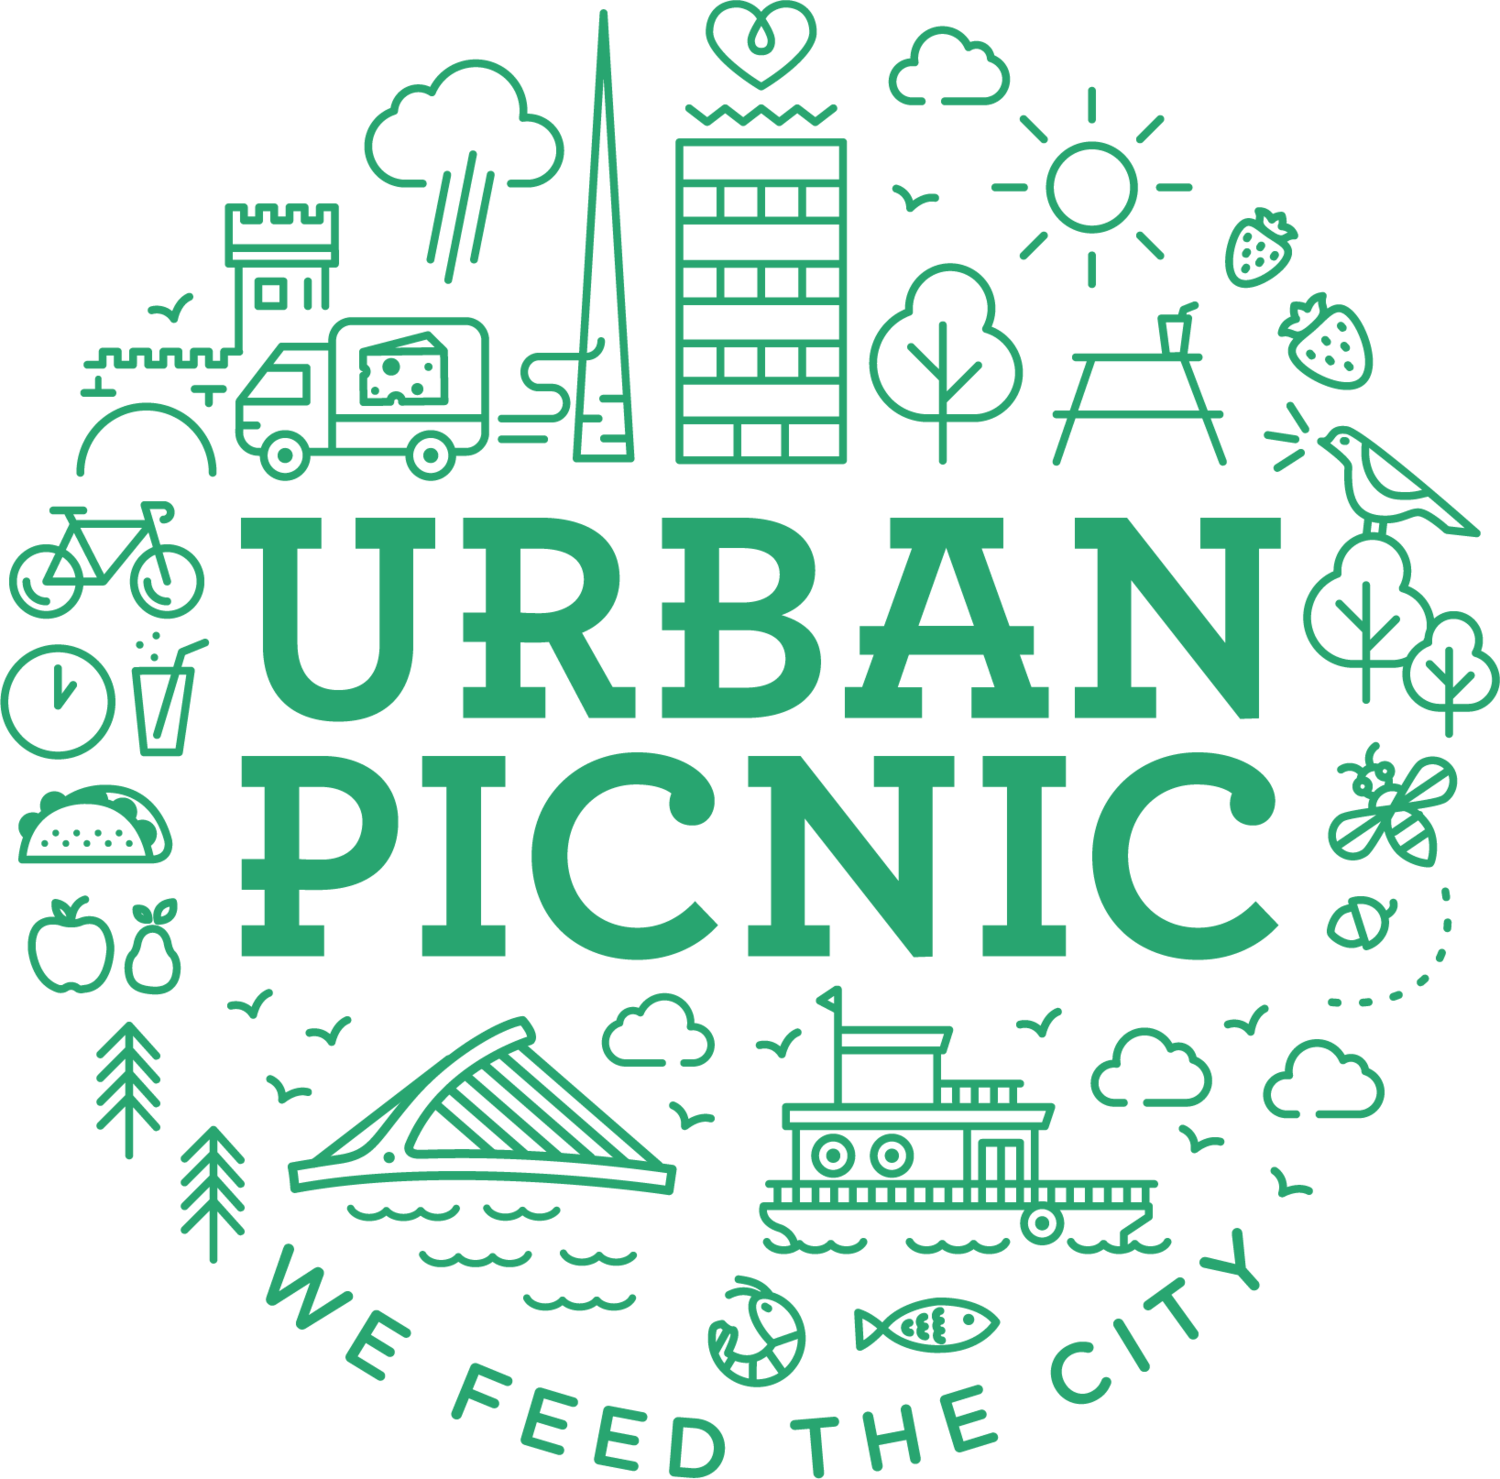 Urban Picnic Dublin Food Blog — Urban Picnic